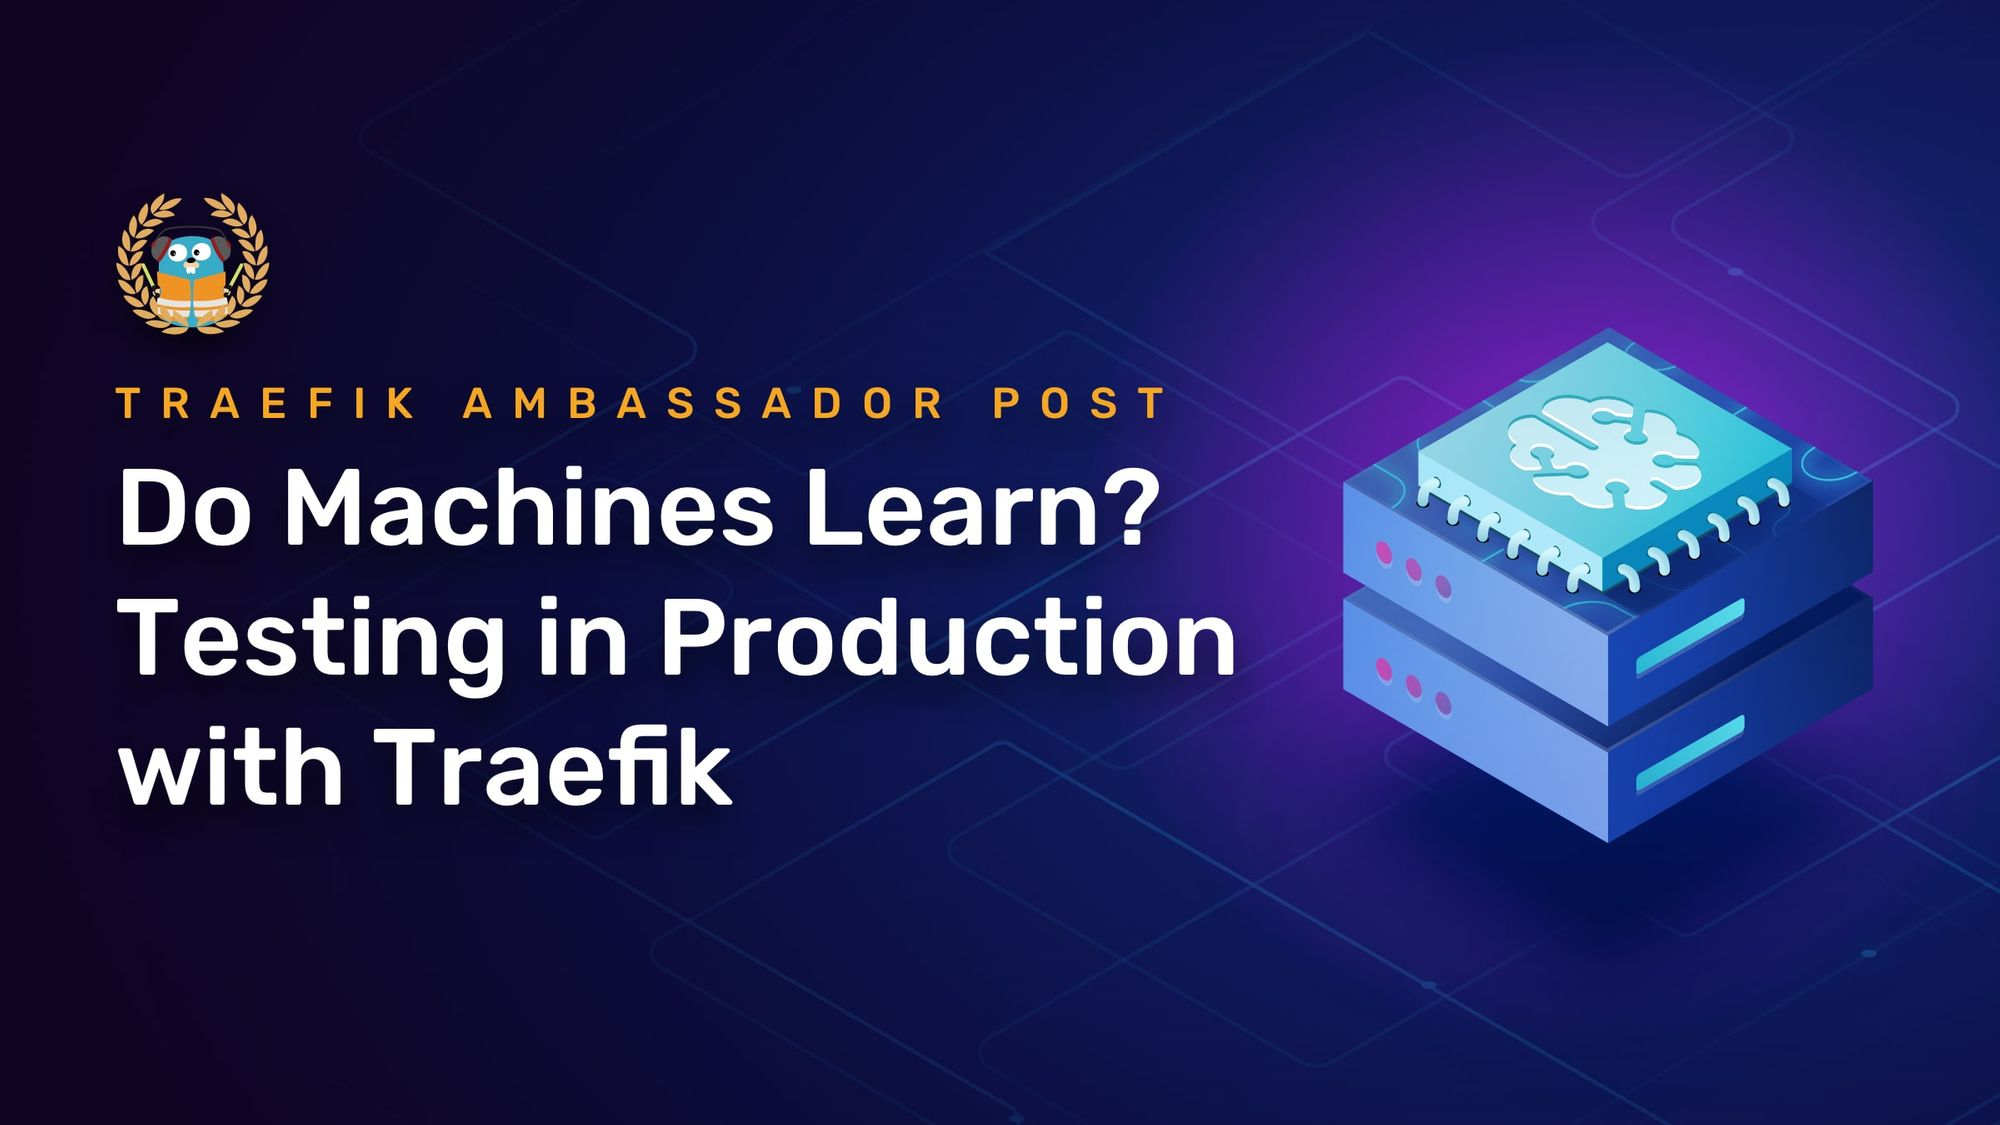 Do Machines Learn? Testing in Production with Traefik